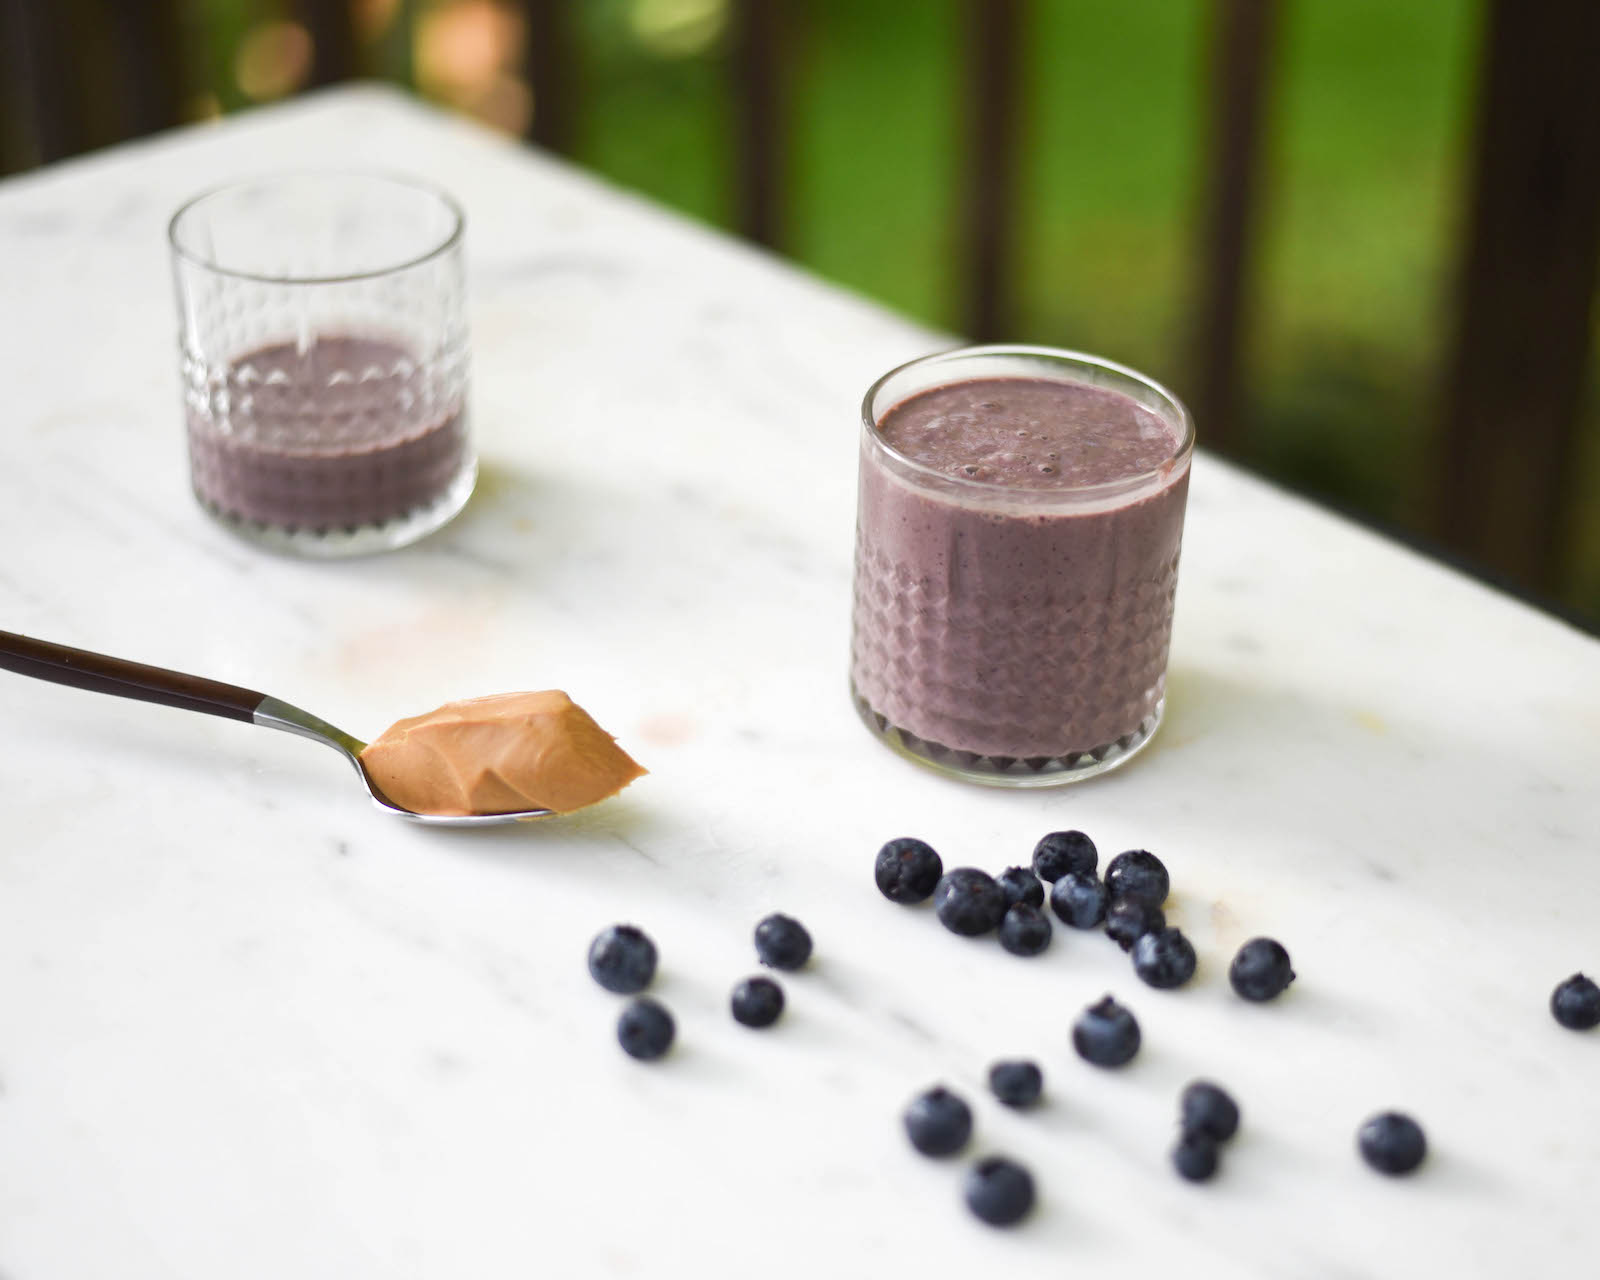 Why I Put Superfoods and Adaptogens in My Morning Smoothie